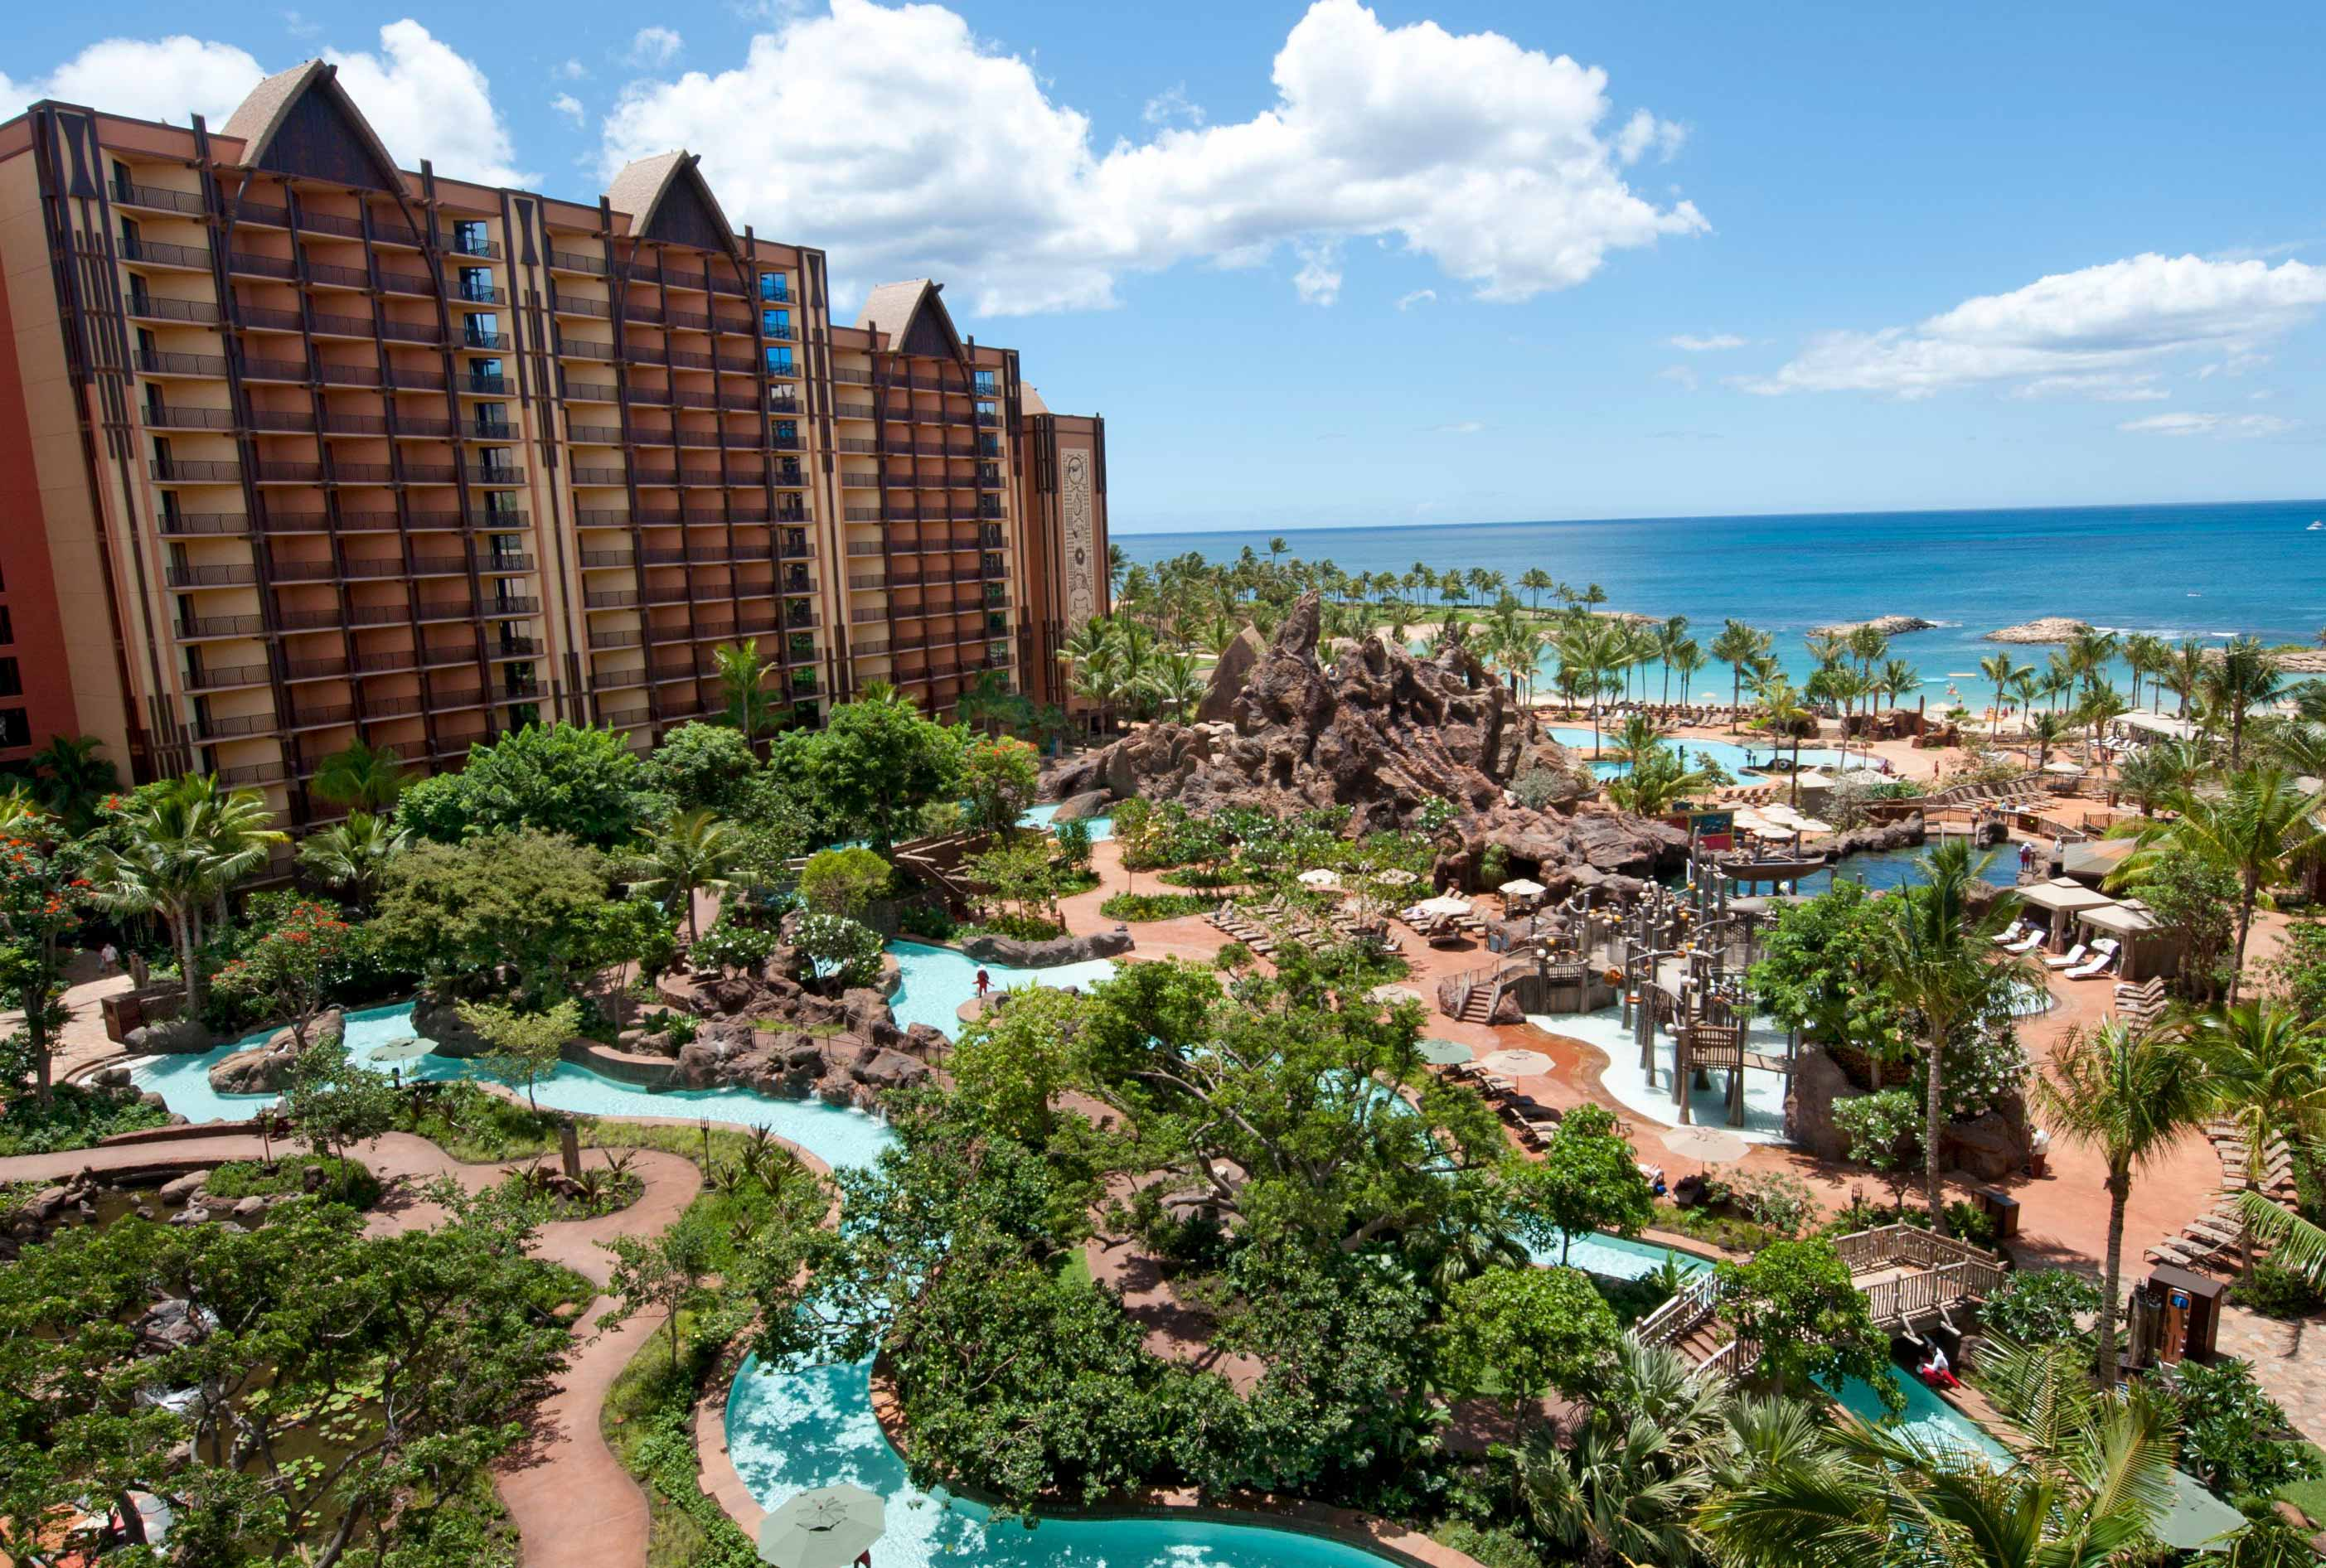 How My Daughter & I Got Our Groove Back At Disney Aulani in Hawaii